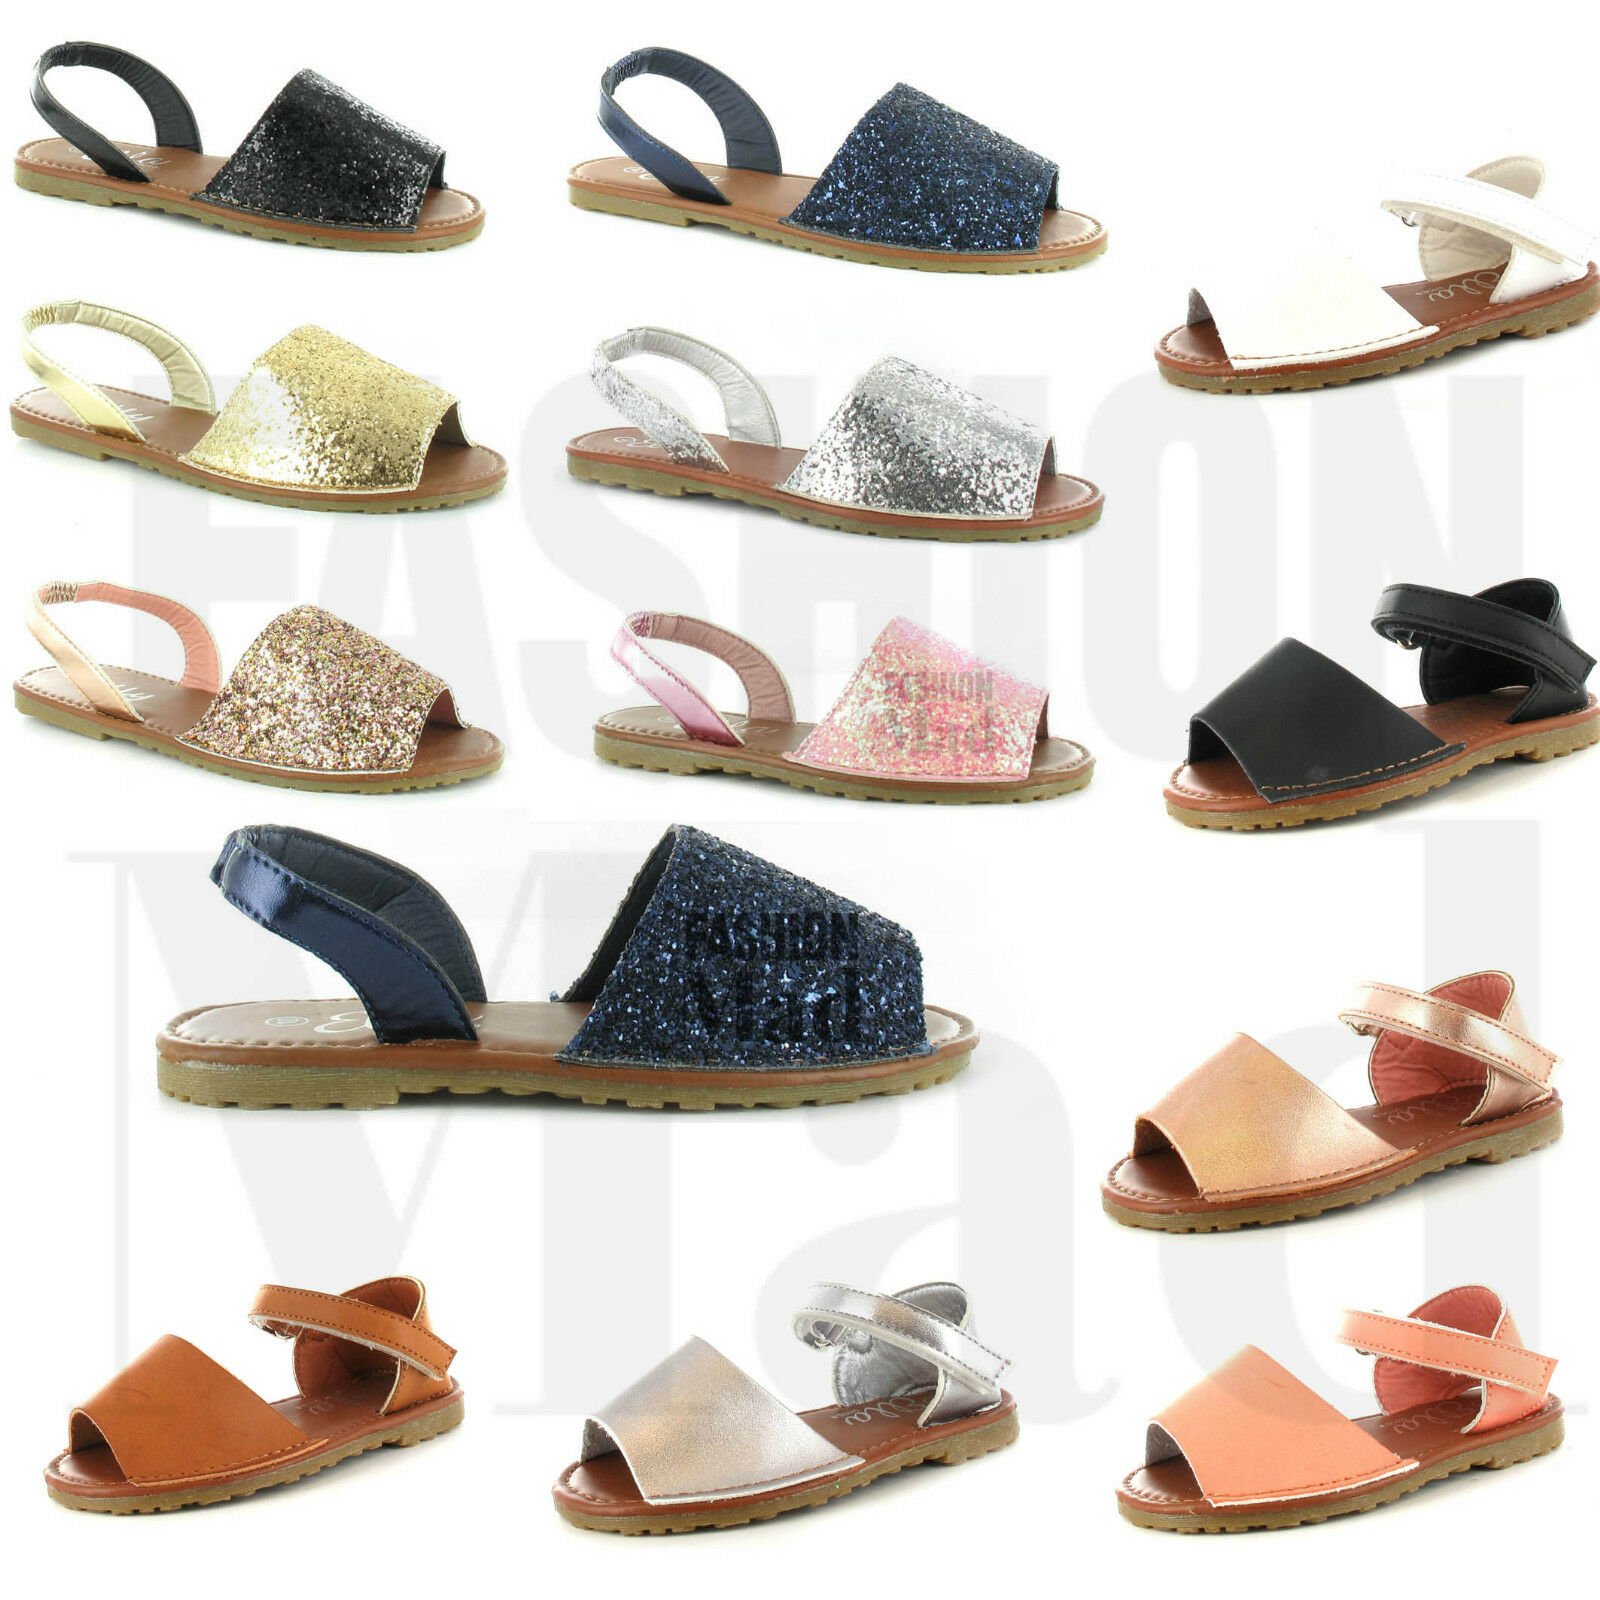 Man's/Woman's GIRLS LADIES GLITTER SUMMER MENORCAN SHOES SANDALS SLING BACK BEACH SHOES MENORCAN SIZE 10-2 Crazy price Pleasant appearance The first batch of customers' comprehensive specifications GH1032 bd8e45